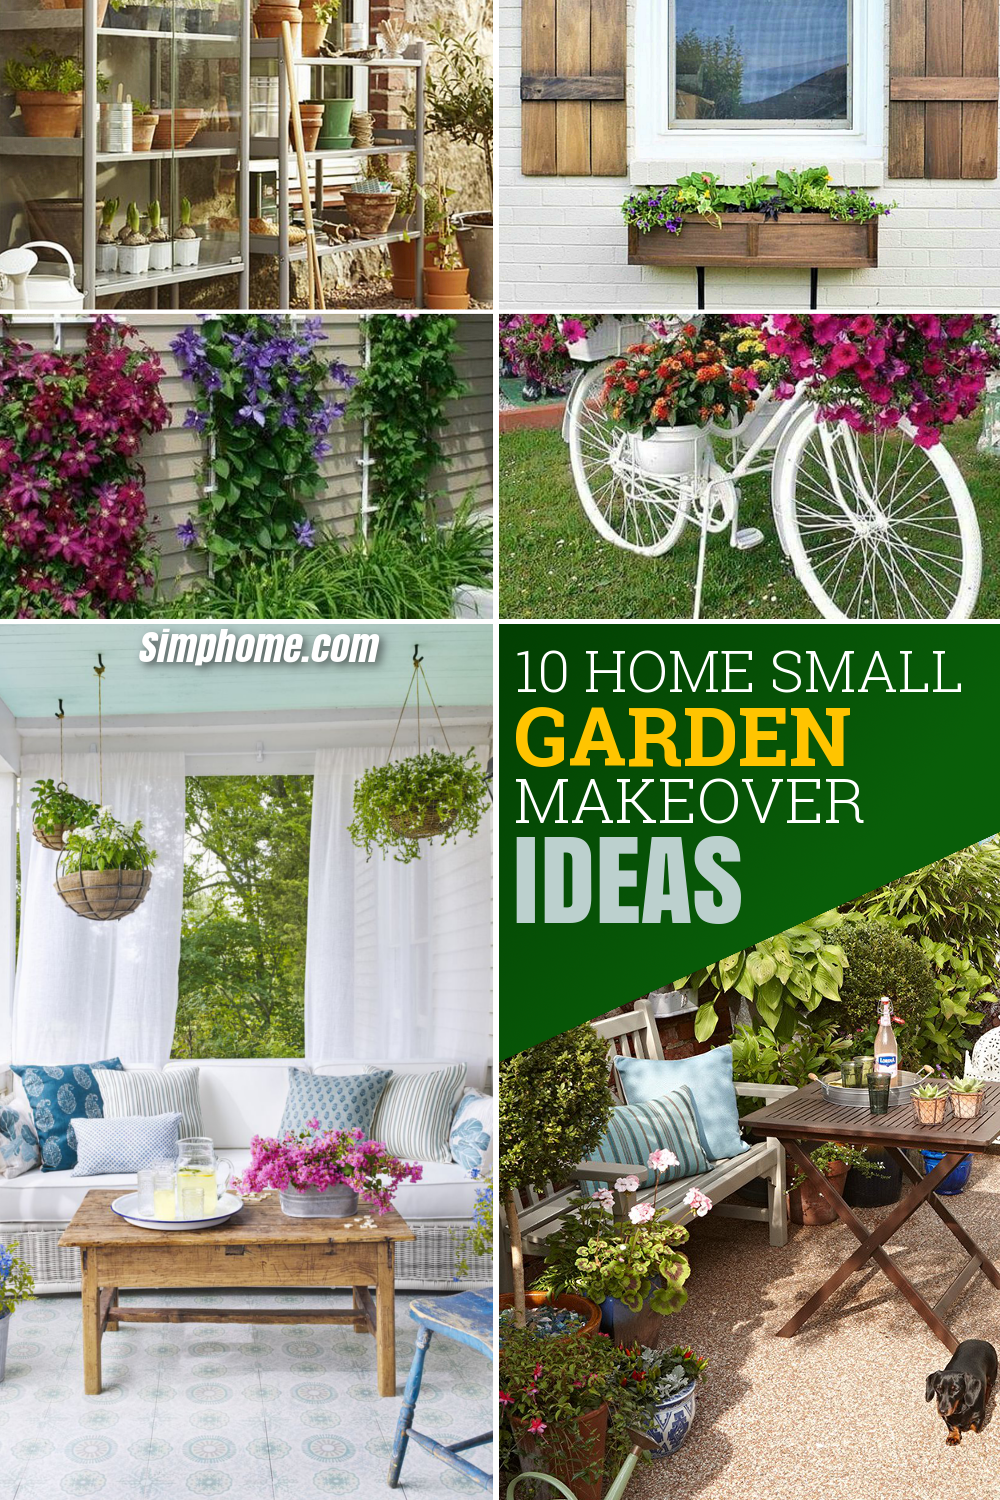 10 Home Small Garden Makeover Ideas via simphome com pinterest image long